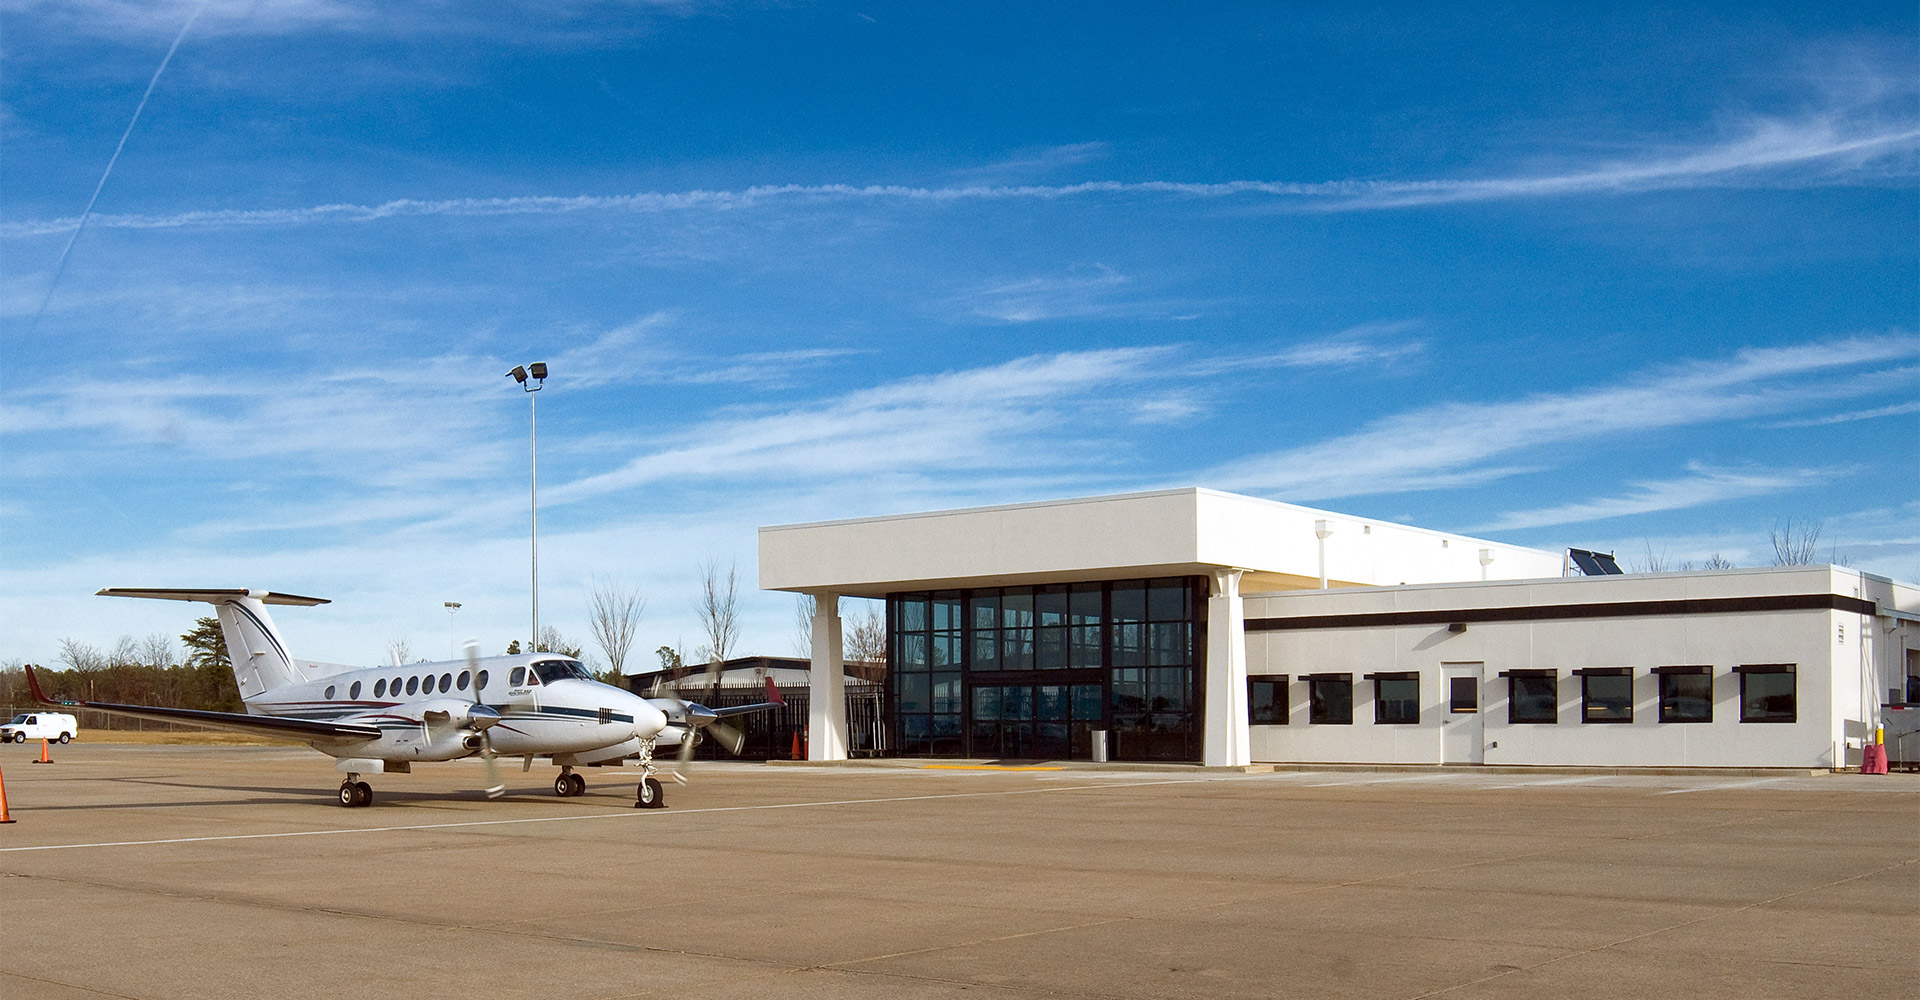 Exterior of Greenville GA Terminal.